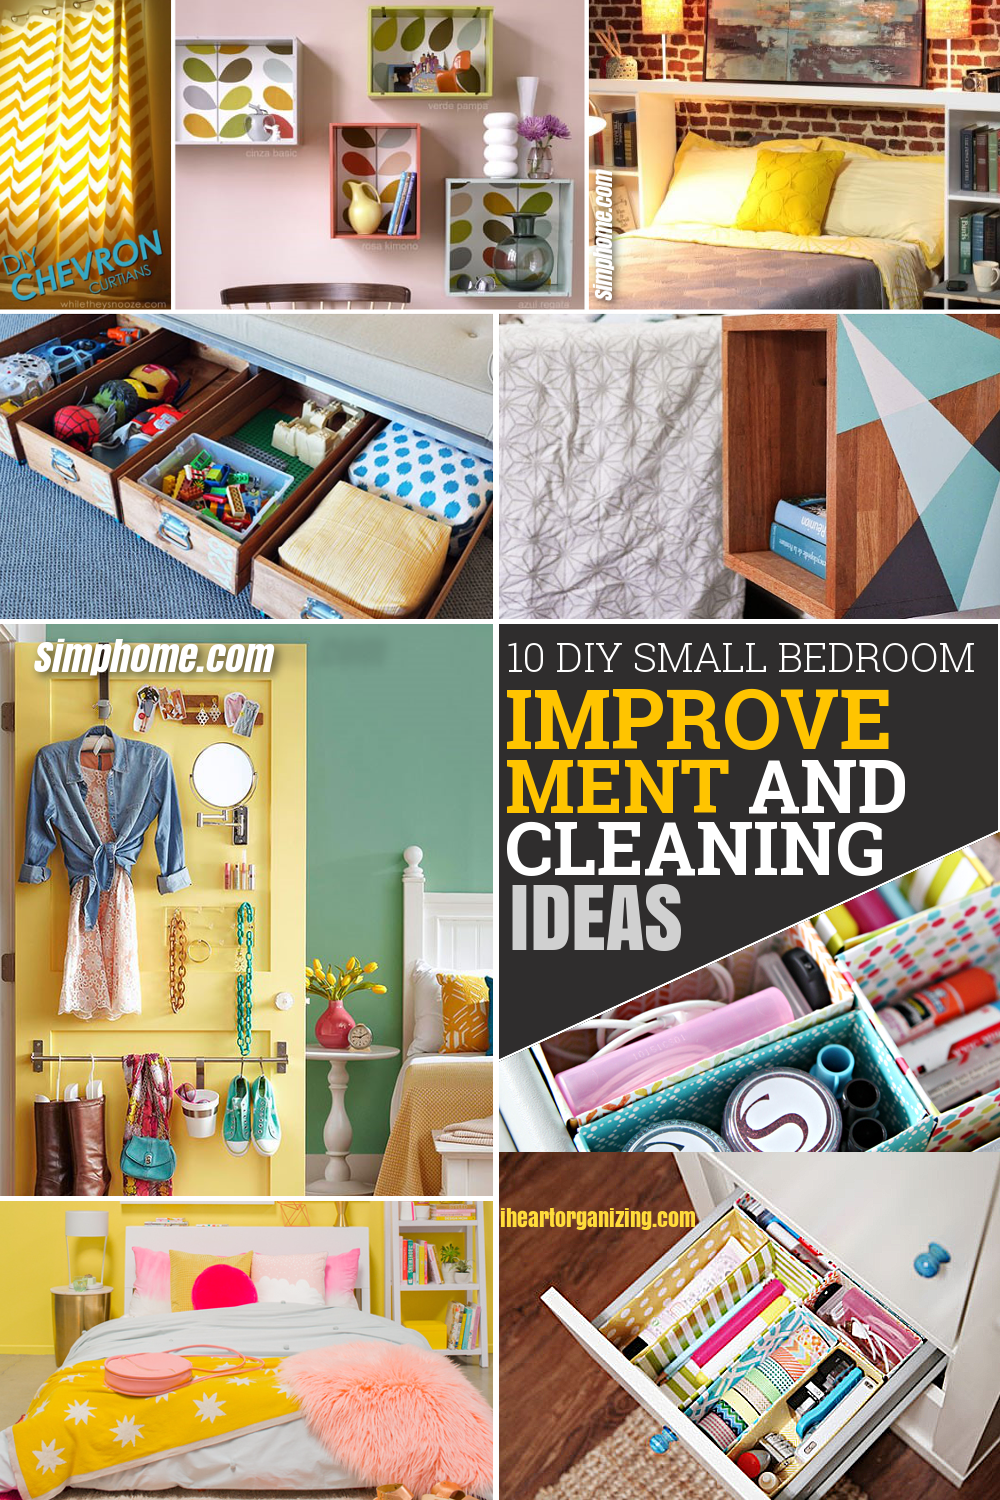 10 DIY Small Bedroom Improvement and Cleaning Ideas via Simphome Pinterest featured image